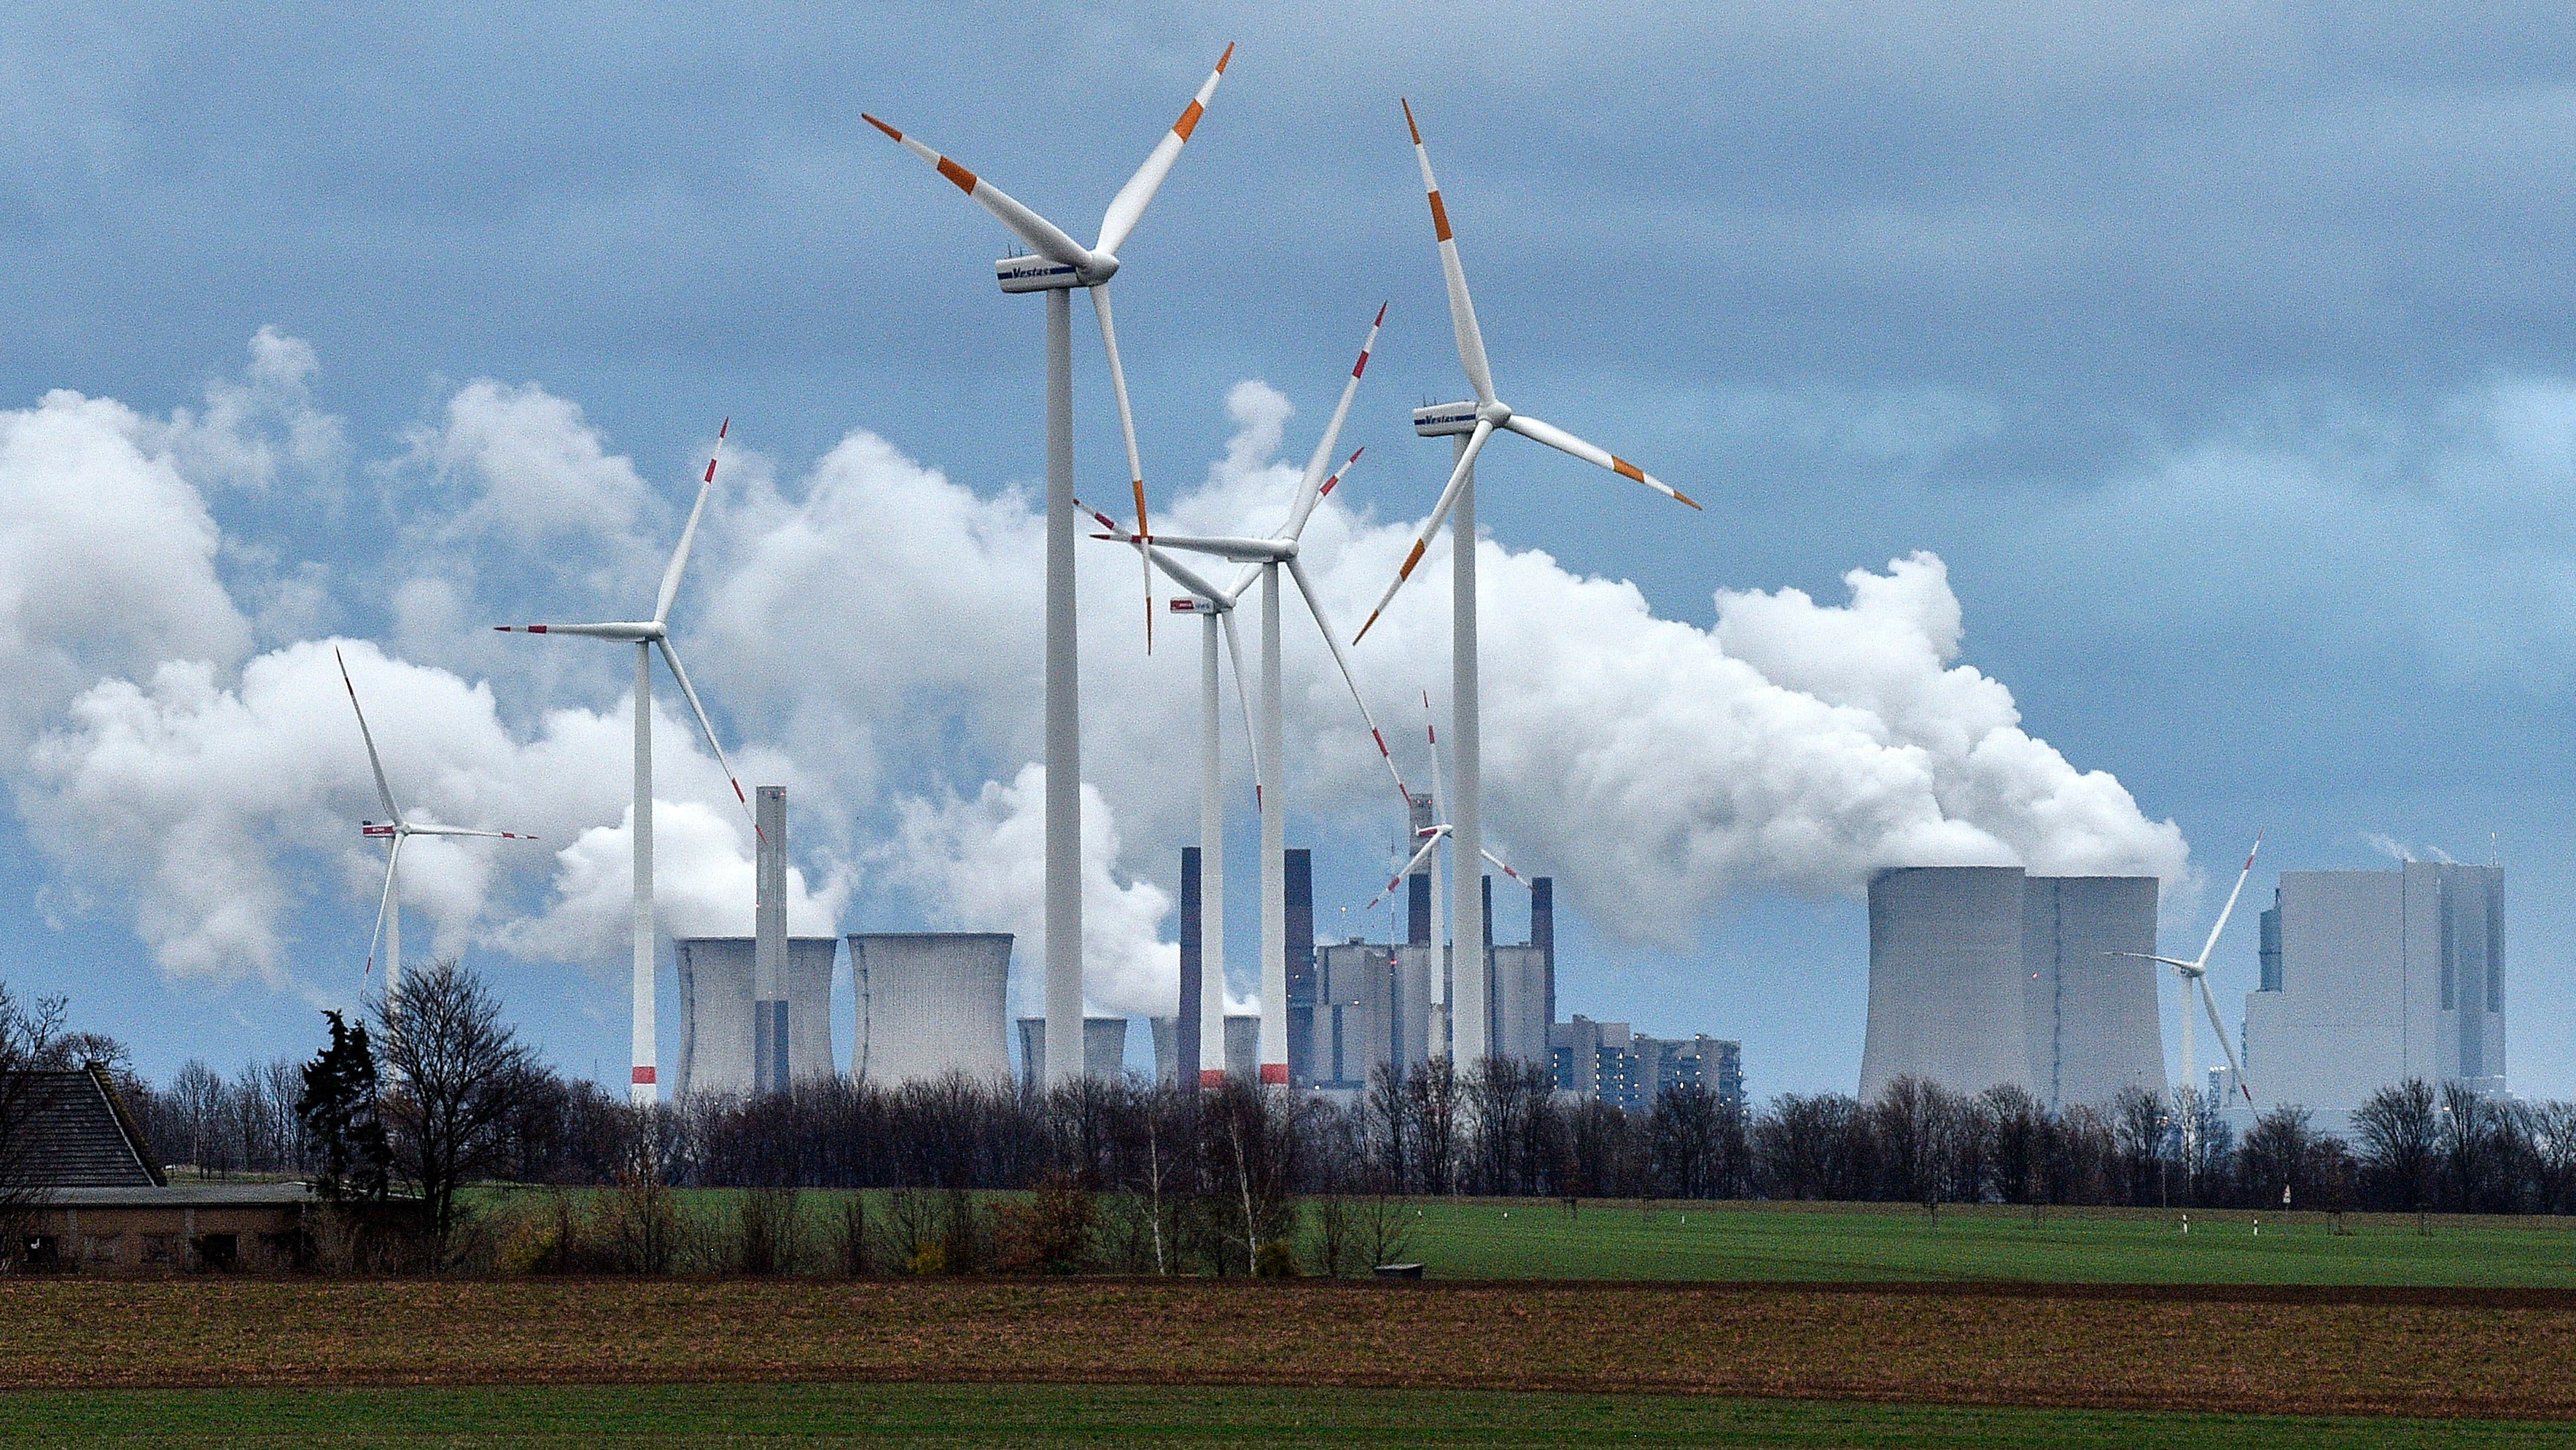 1,000 Organisations Have Pulled Their Money Out Of Fossil Fuels In Major Milestone